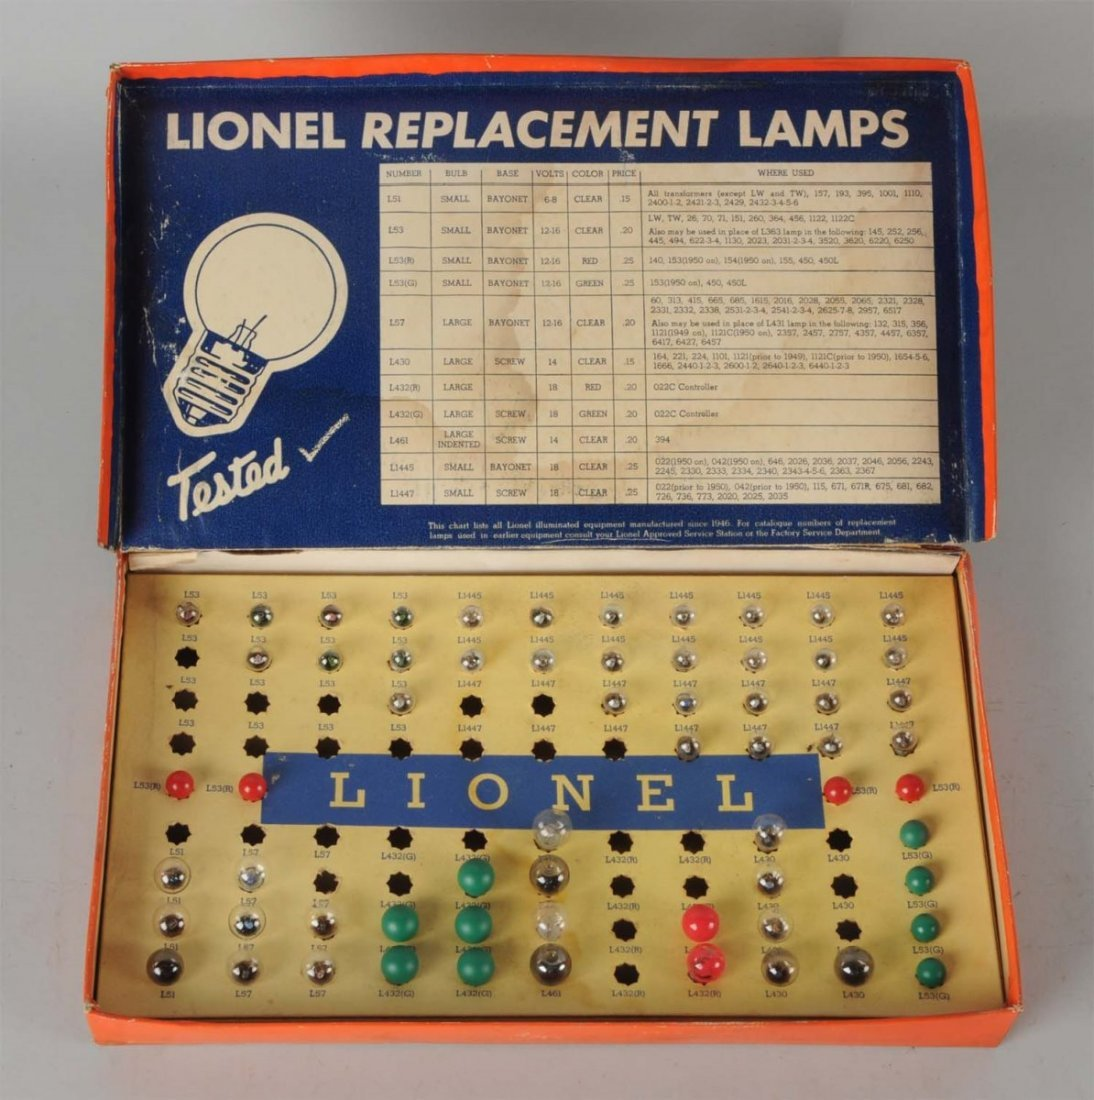 Lionel No. 123 Replacement Lamp Assortment.